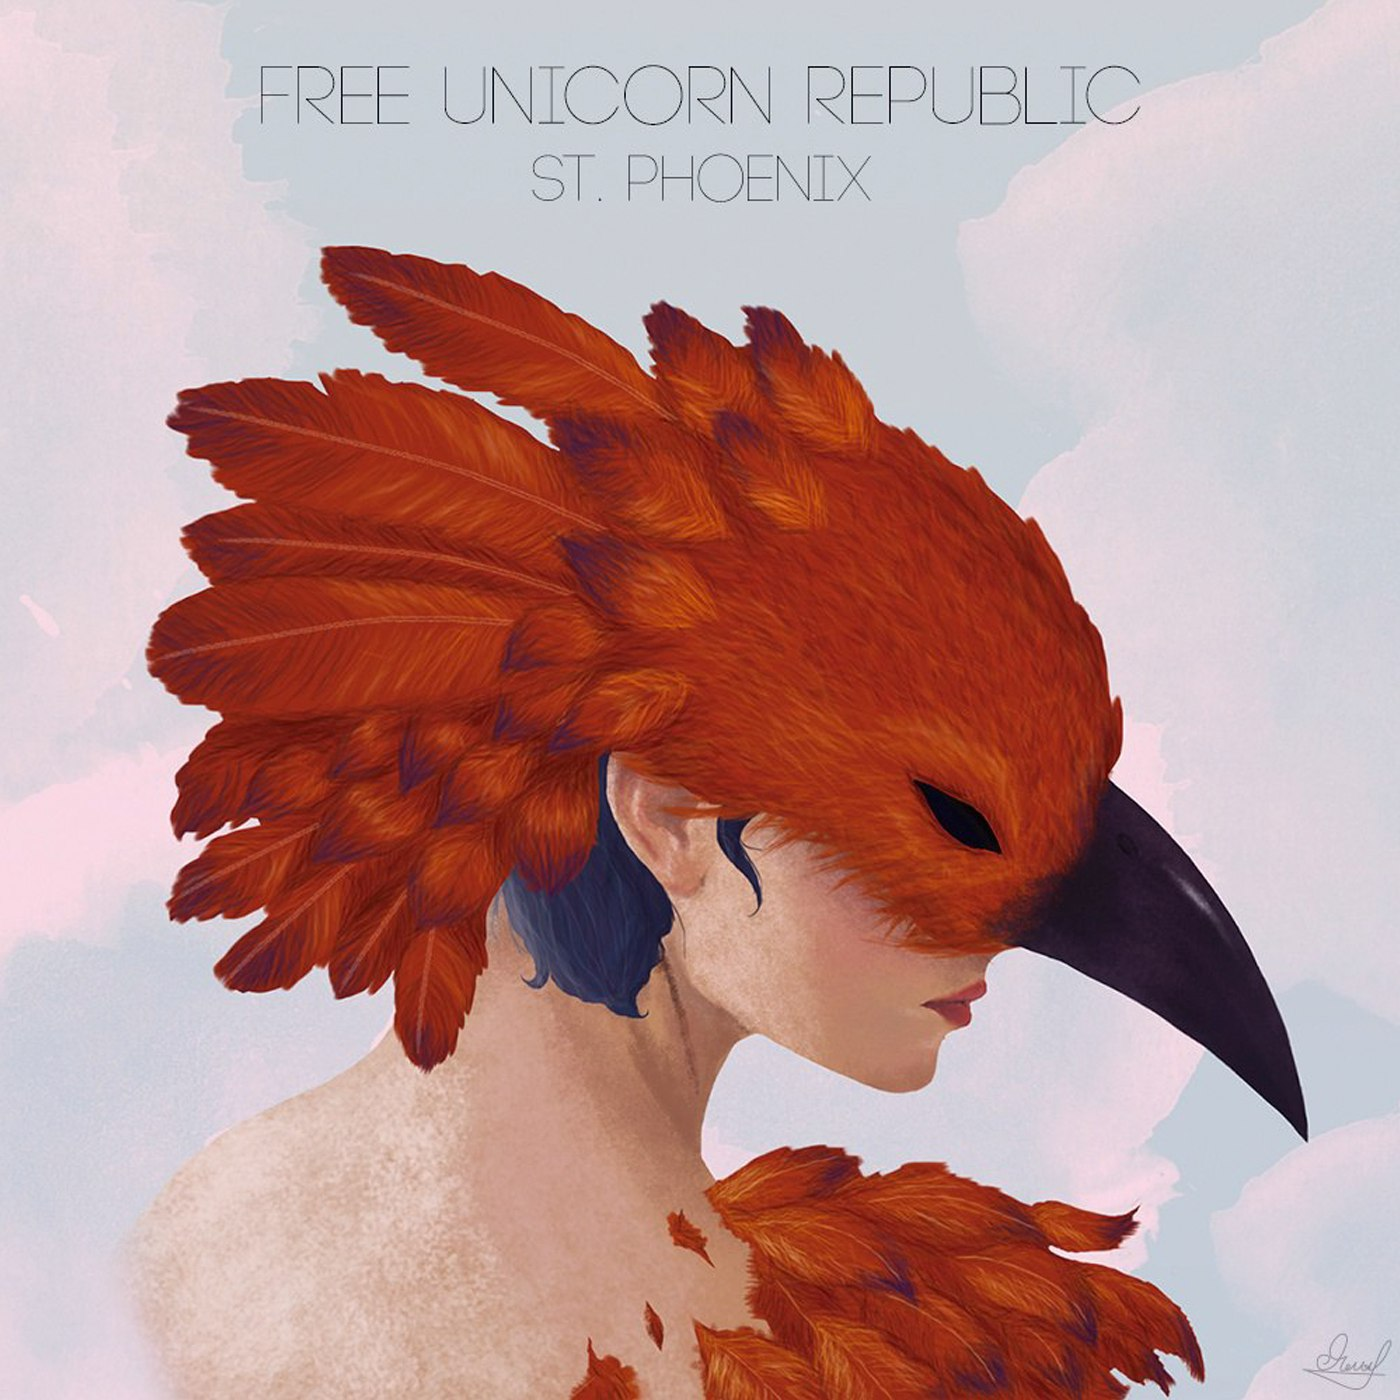 НОВОЕ ИМЯ: Free Unicorn Republic